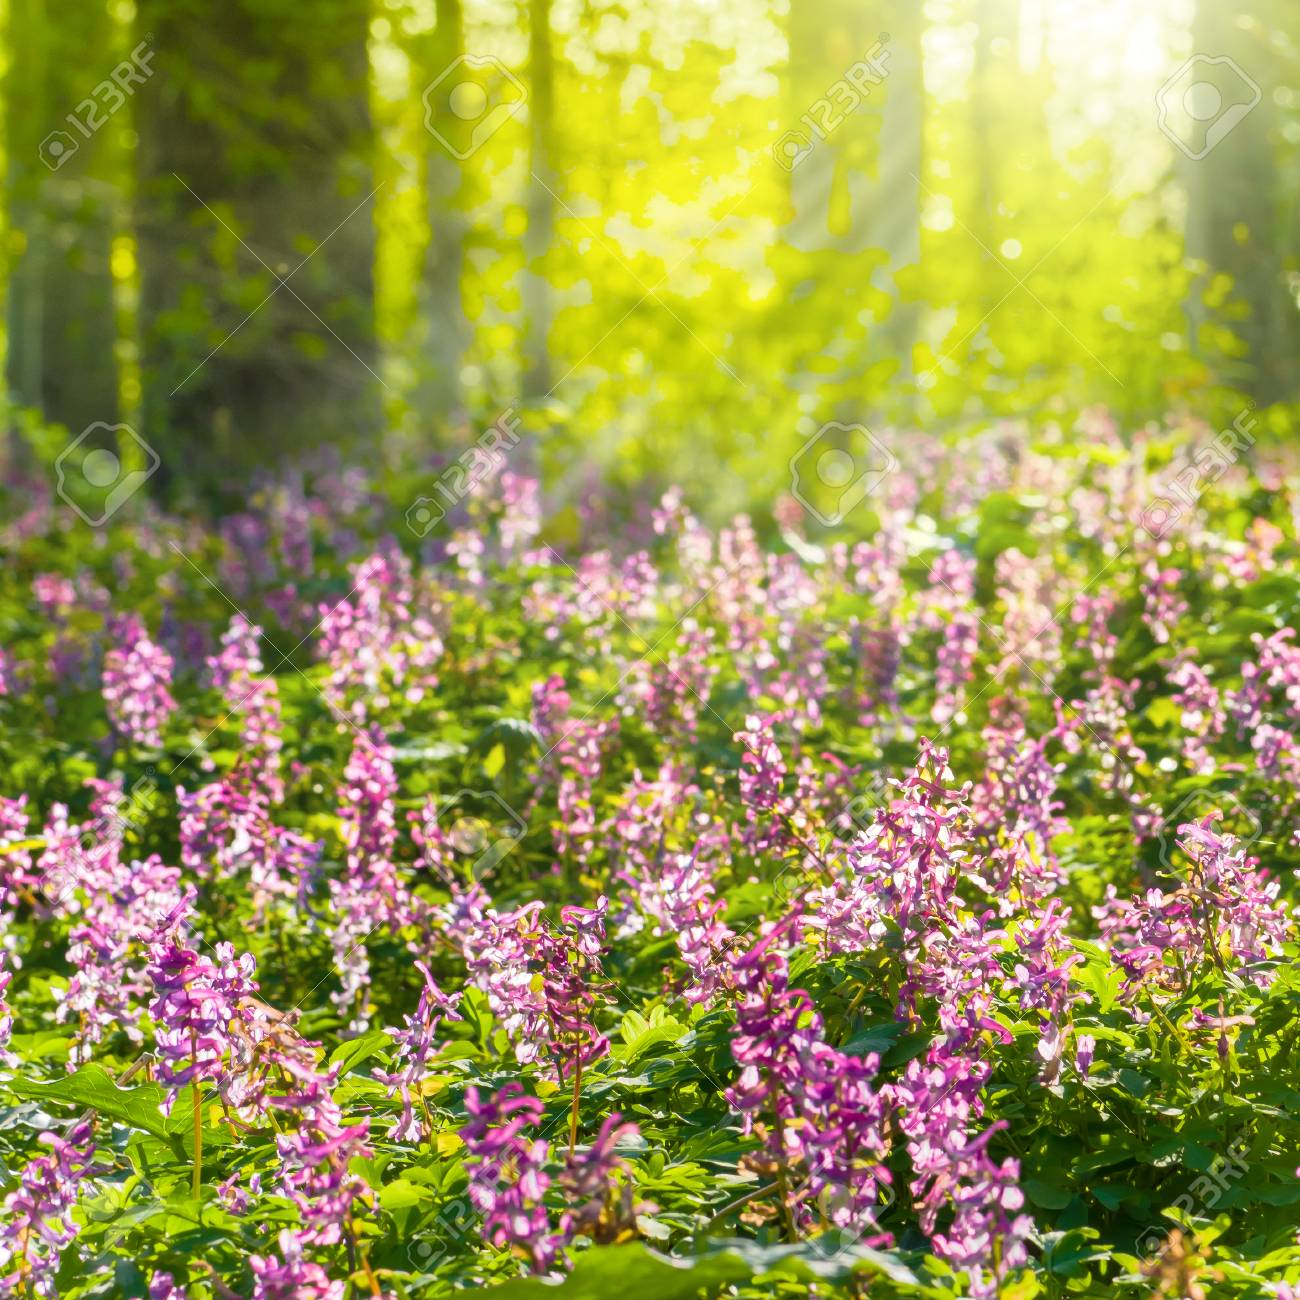 Sunbathed Forest With Flowering Corydalis Plants White And Purple